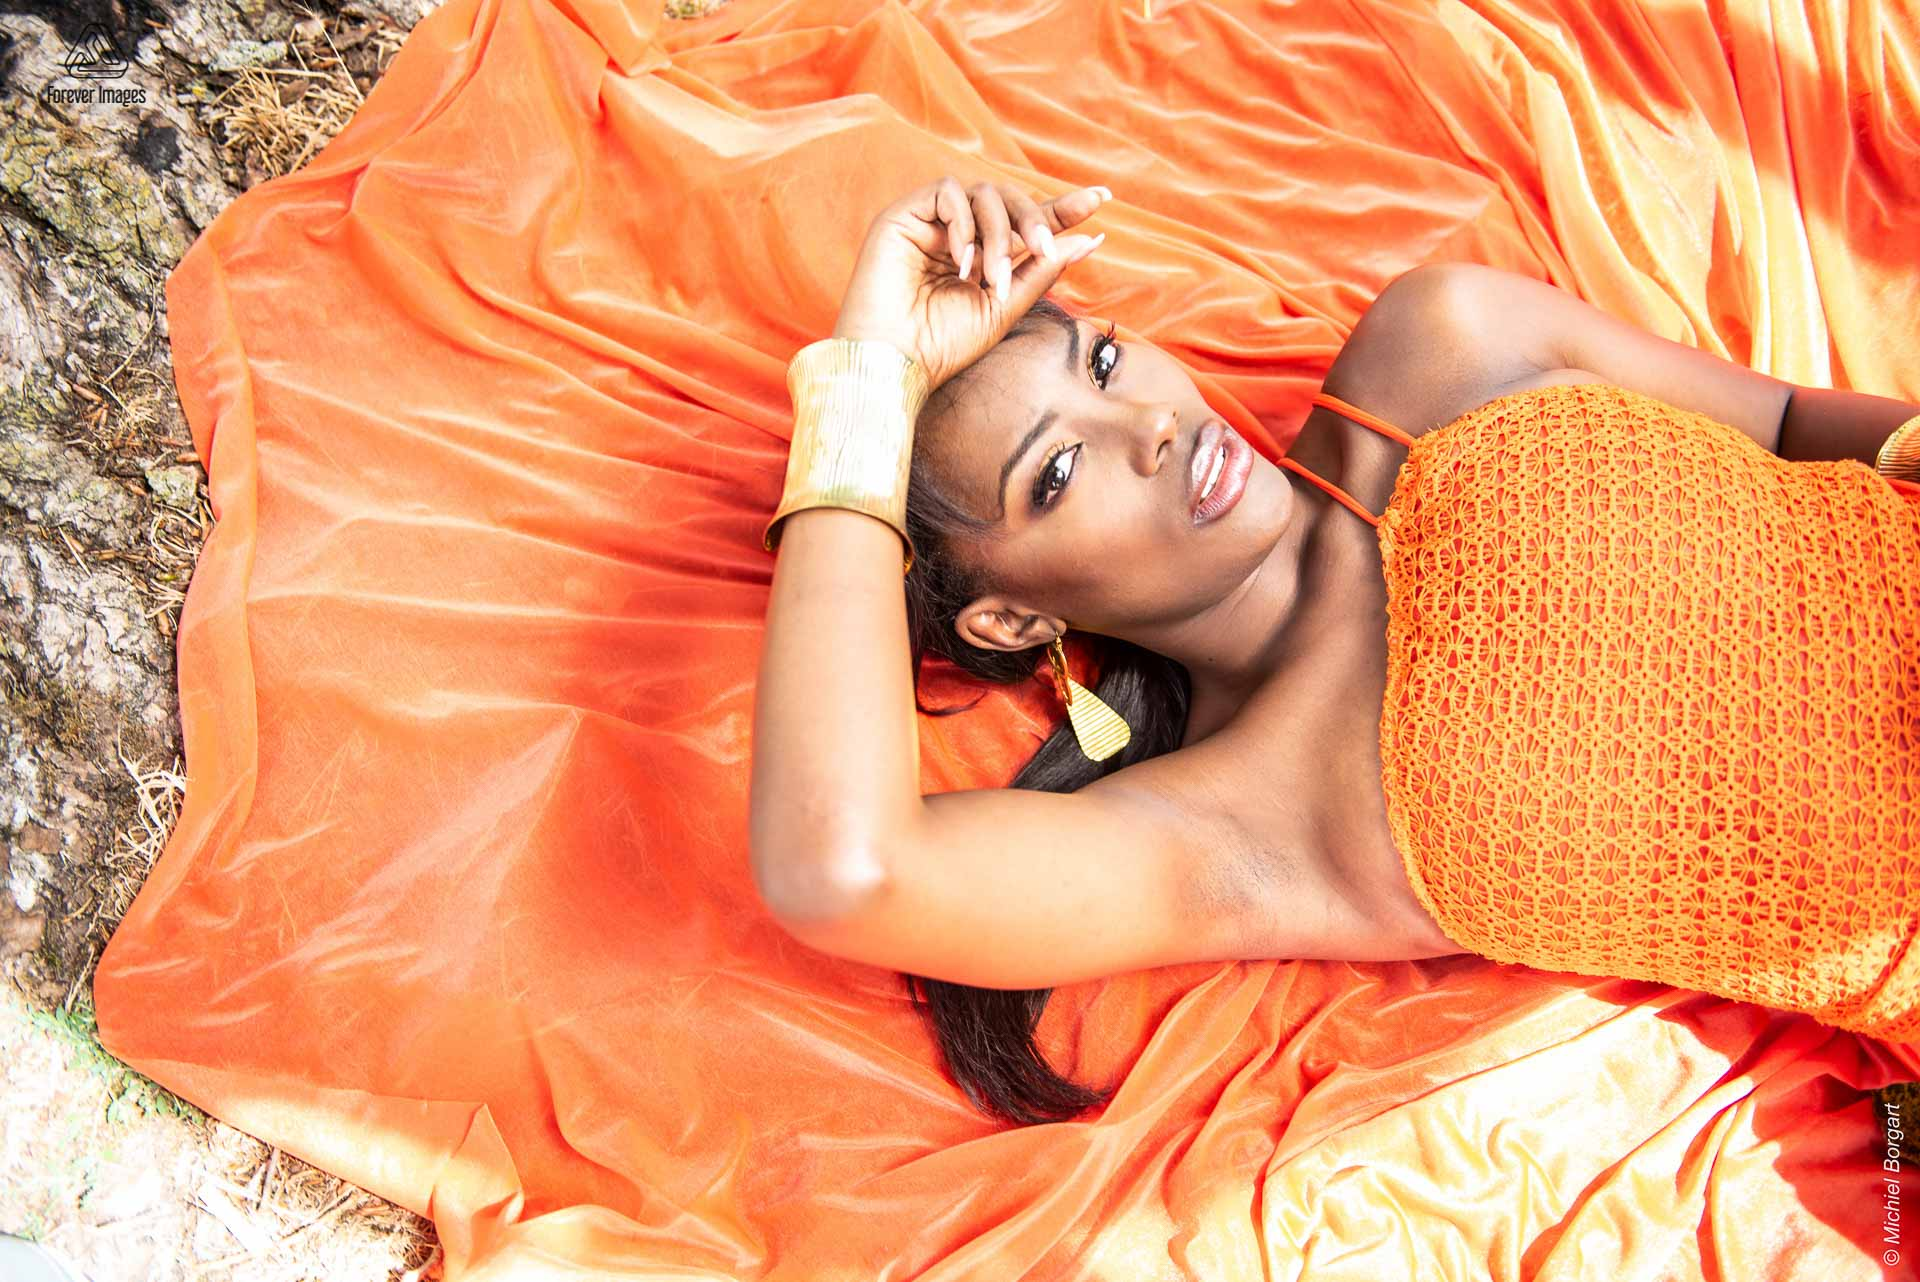 Fashion photo urben shoot orange dress on the floor side | Mariana Pietersz David Cardenas Miss Avantgarde | Fashion Photographer Michiel Borgart - Forever Images.